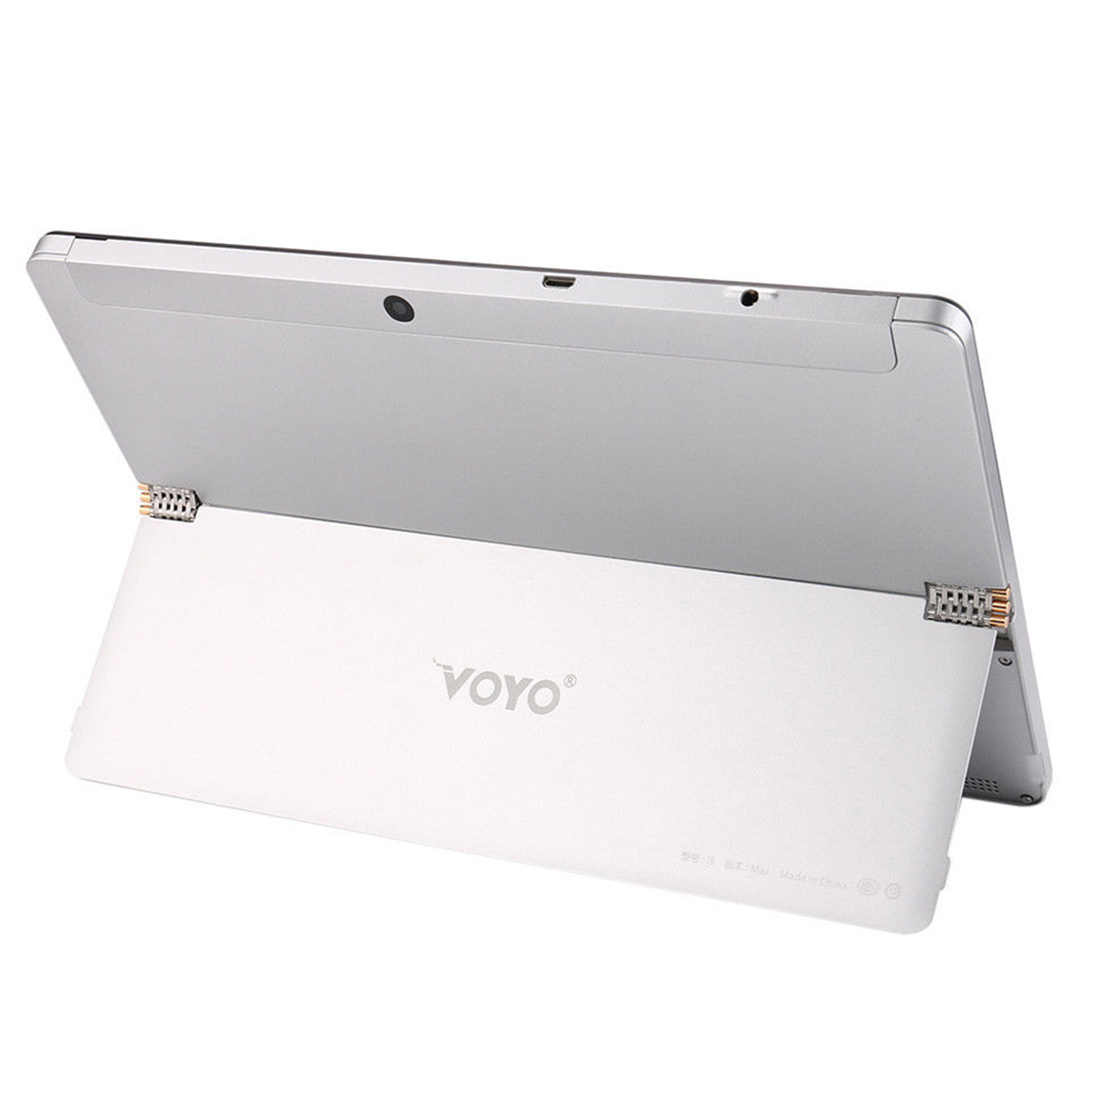 Voyo I8max MT6797 X20 Deca Core 4 GB RAM 64 GB ROM Android Tablet PC Double 4G 10.1 Inch panggilan Telepon Tablet US Plug